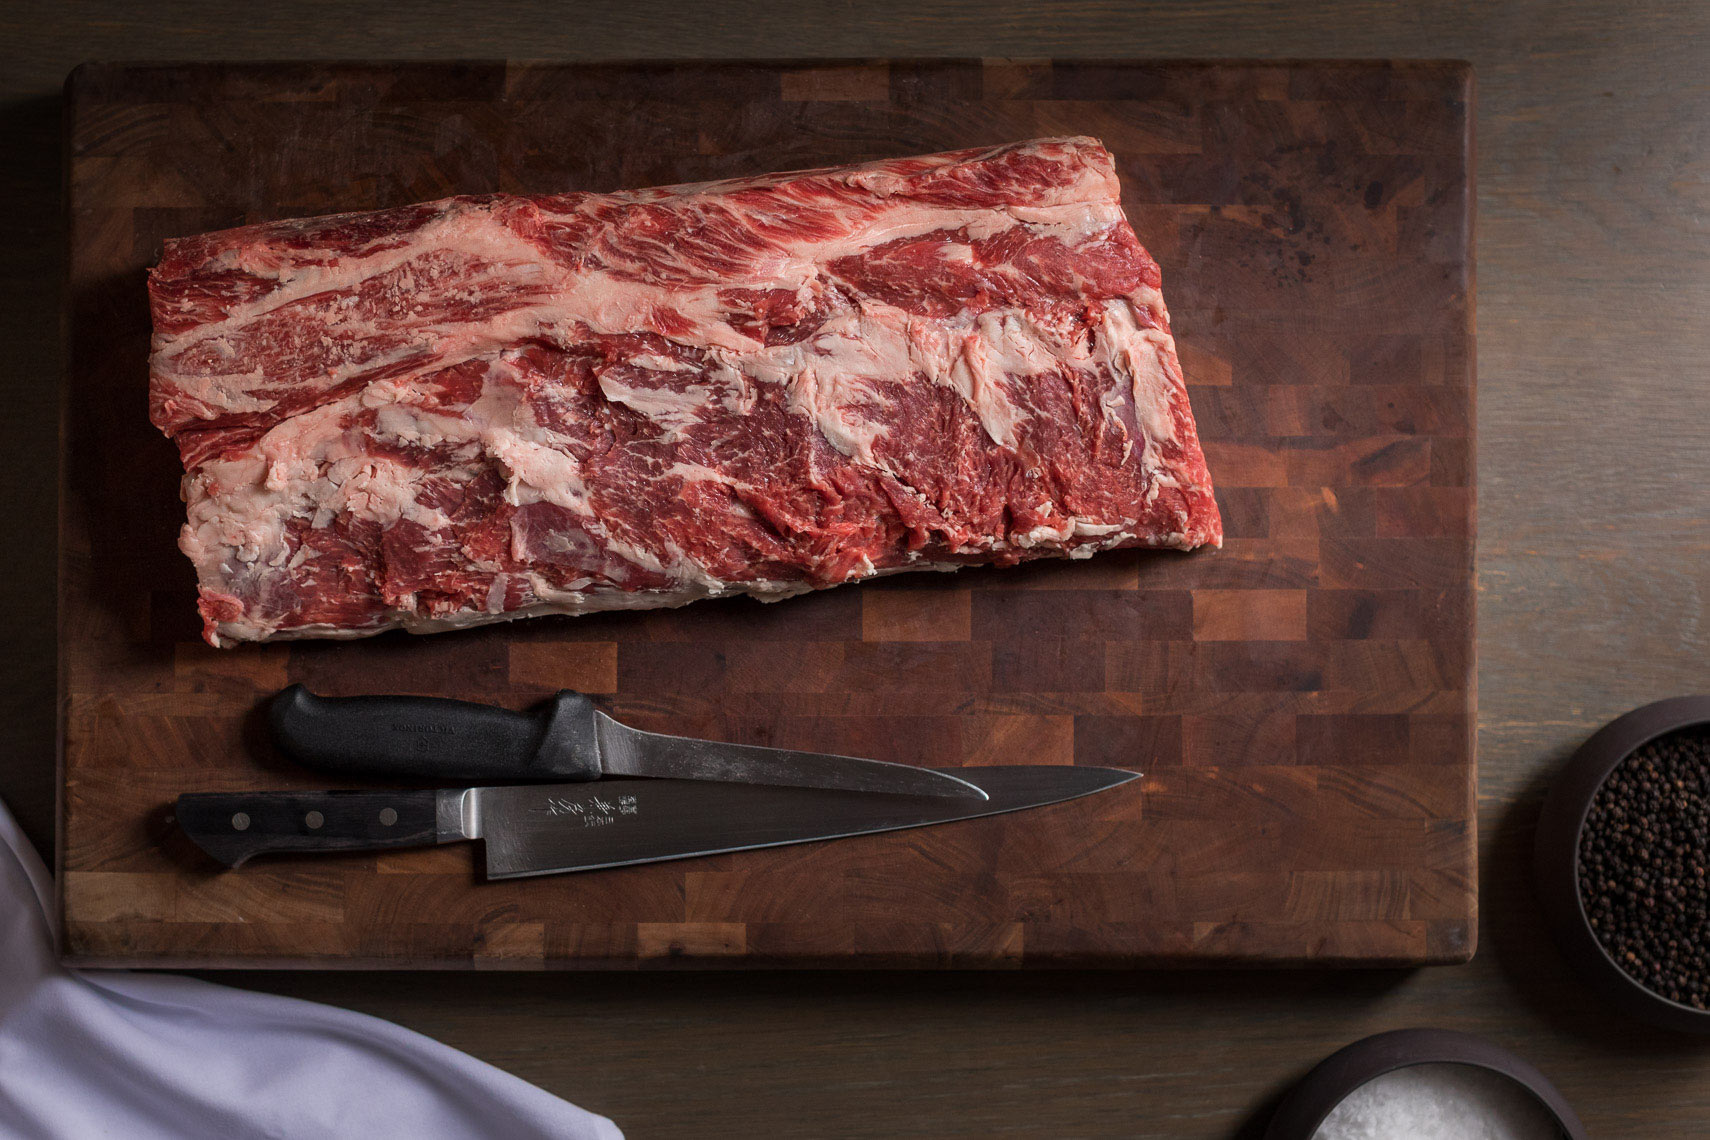 peeler-ranch-wagyu-beef-texas-jason-risner-photography-9336